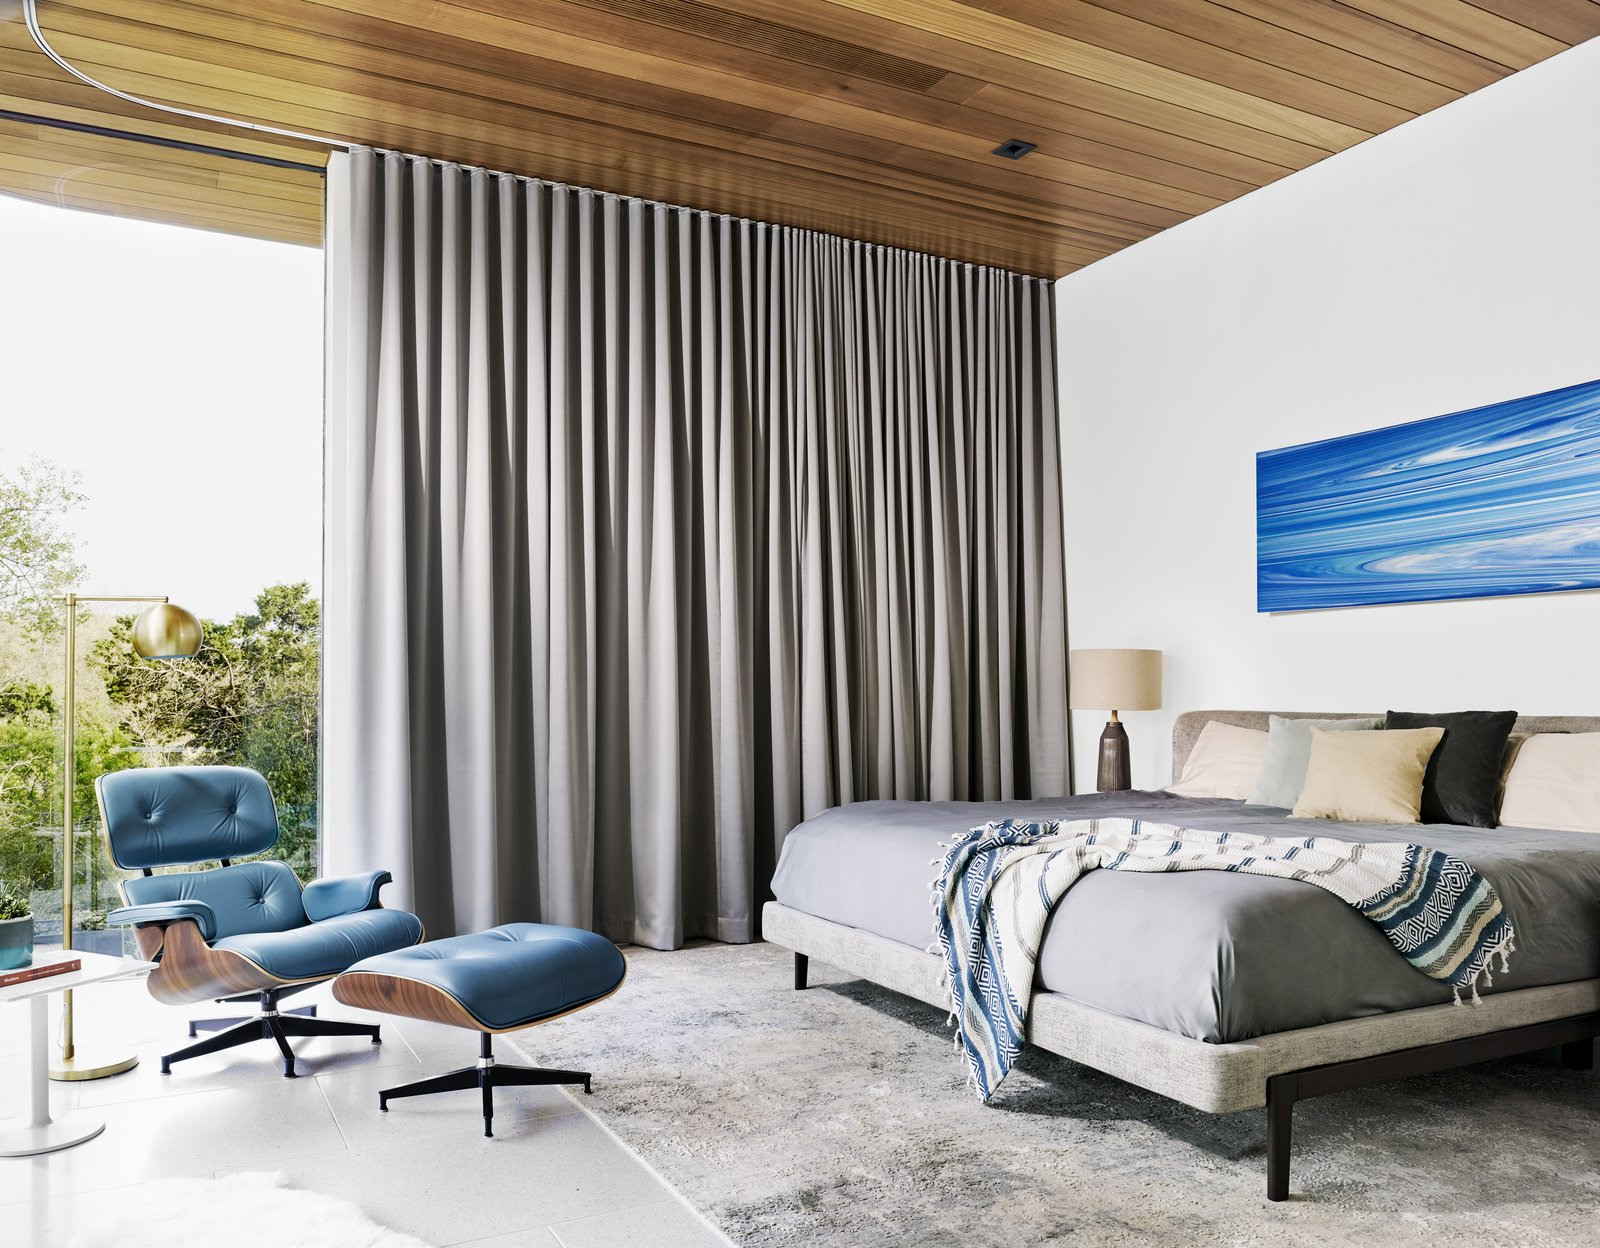 Bedroom, Bed, Table, Floor, Chair, Rug, and Terrazzo Drapes by Cush Cush Design offer privacy in the master bedroom. An Andy Moses painting hangs above the bed.  Best Bedroom Terrazzo Bed Photos from Cover Story: This House in Austin Has a Tree Growing Right Through It